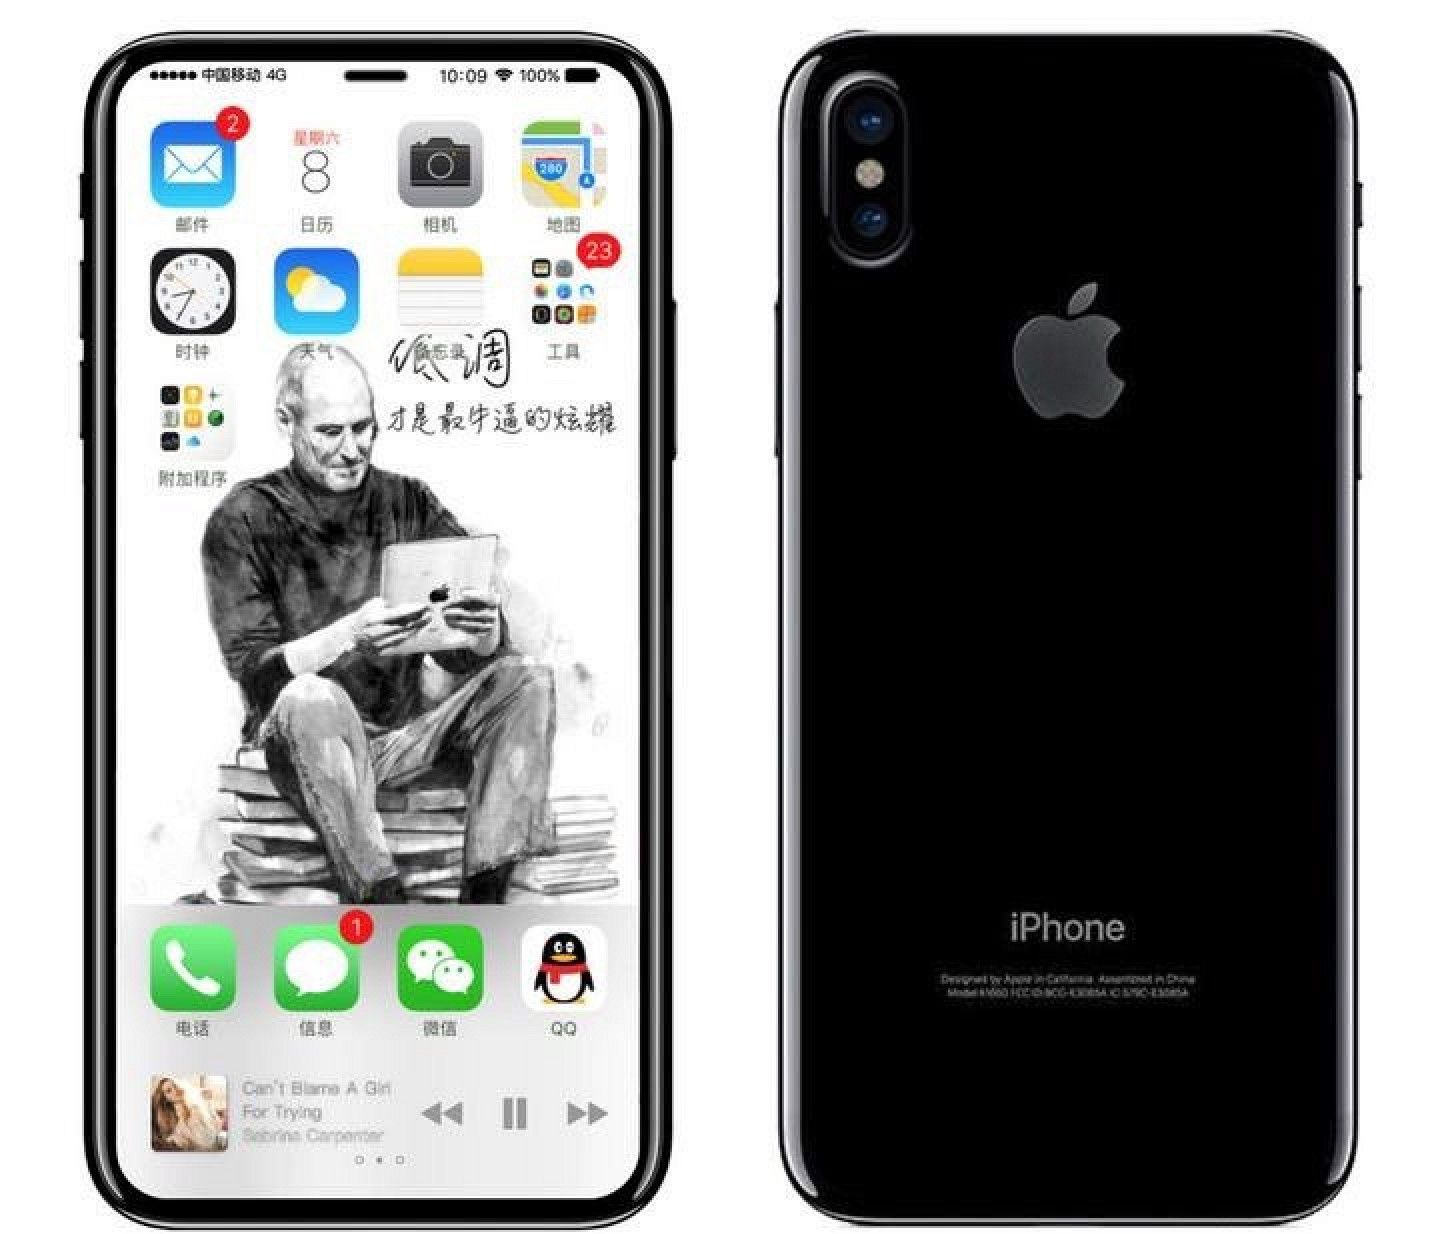 Apple's iPhone 8 should have a catchphrase that reads